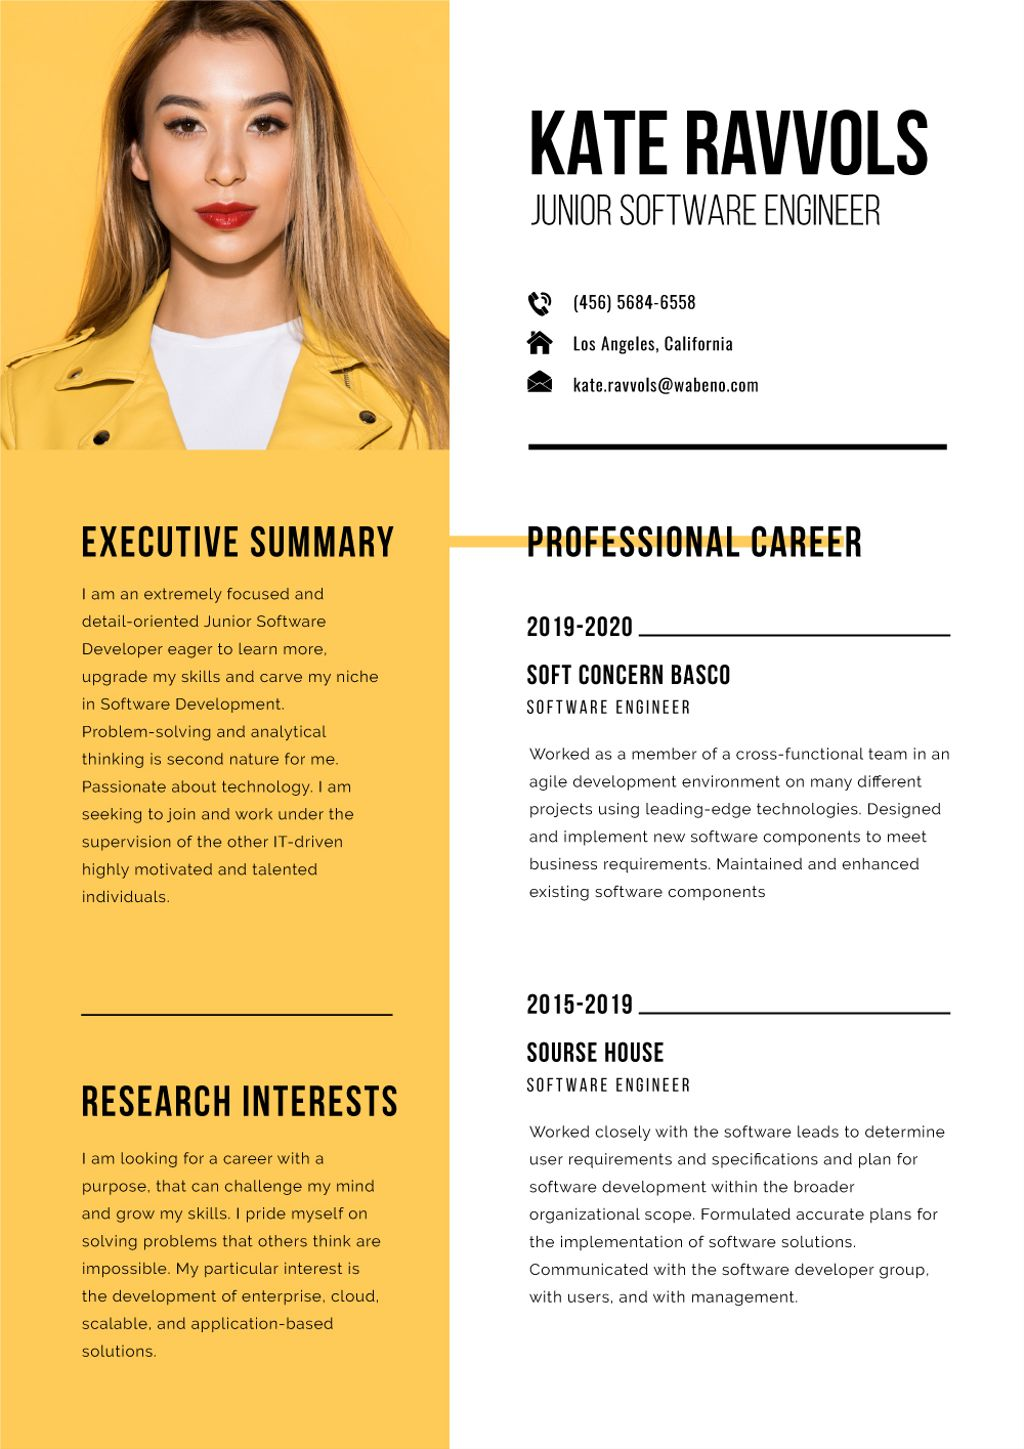 Software Engineer professional profile